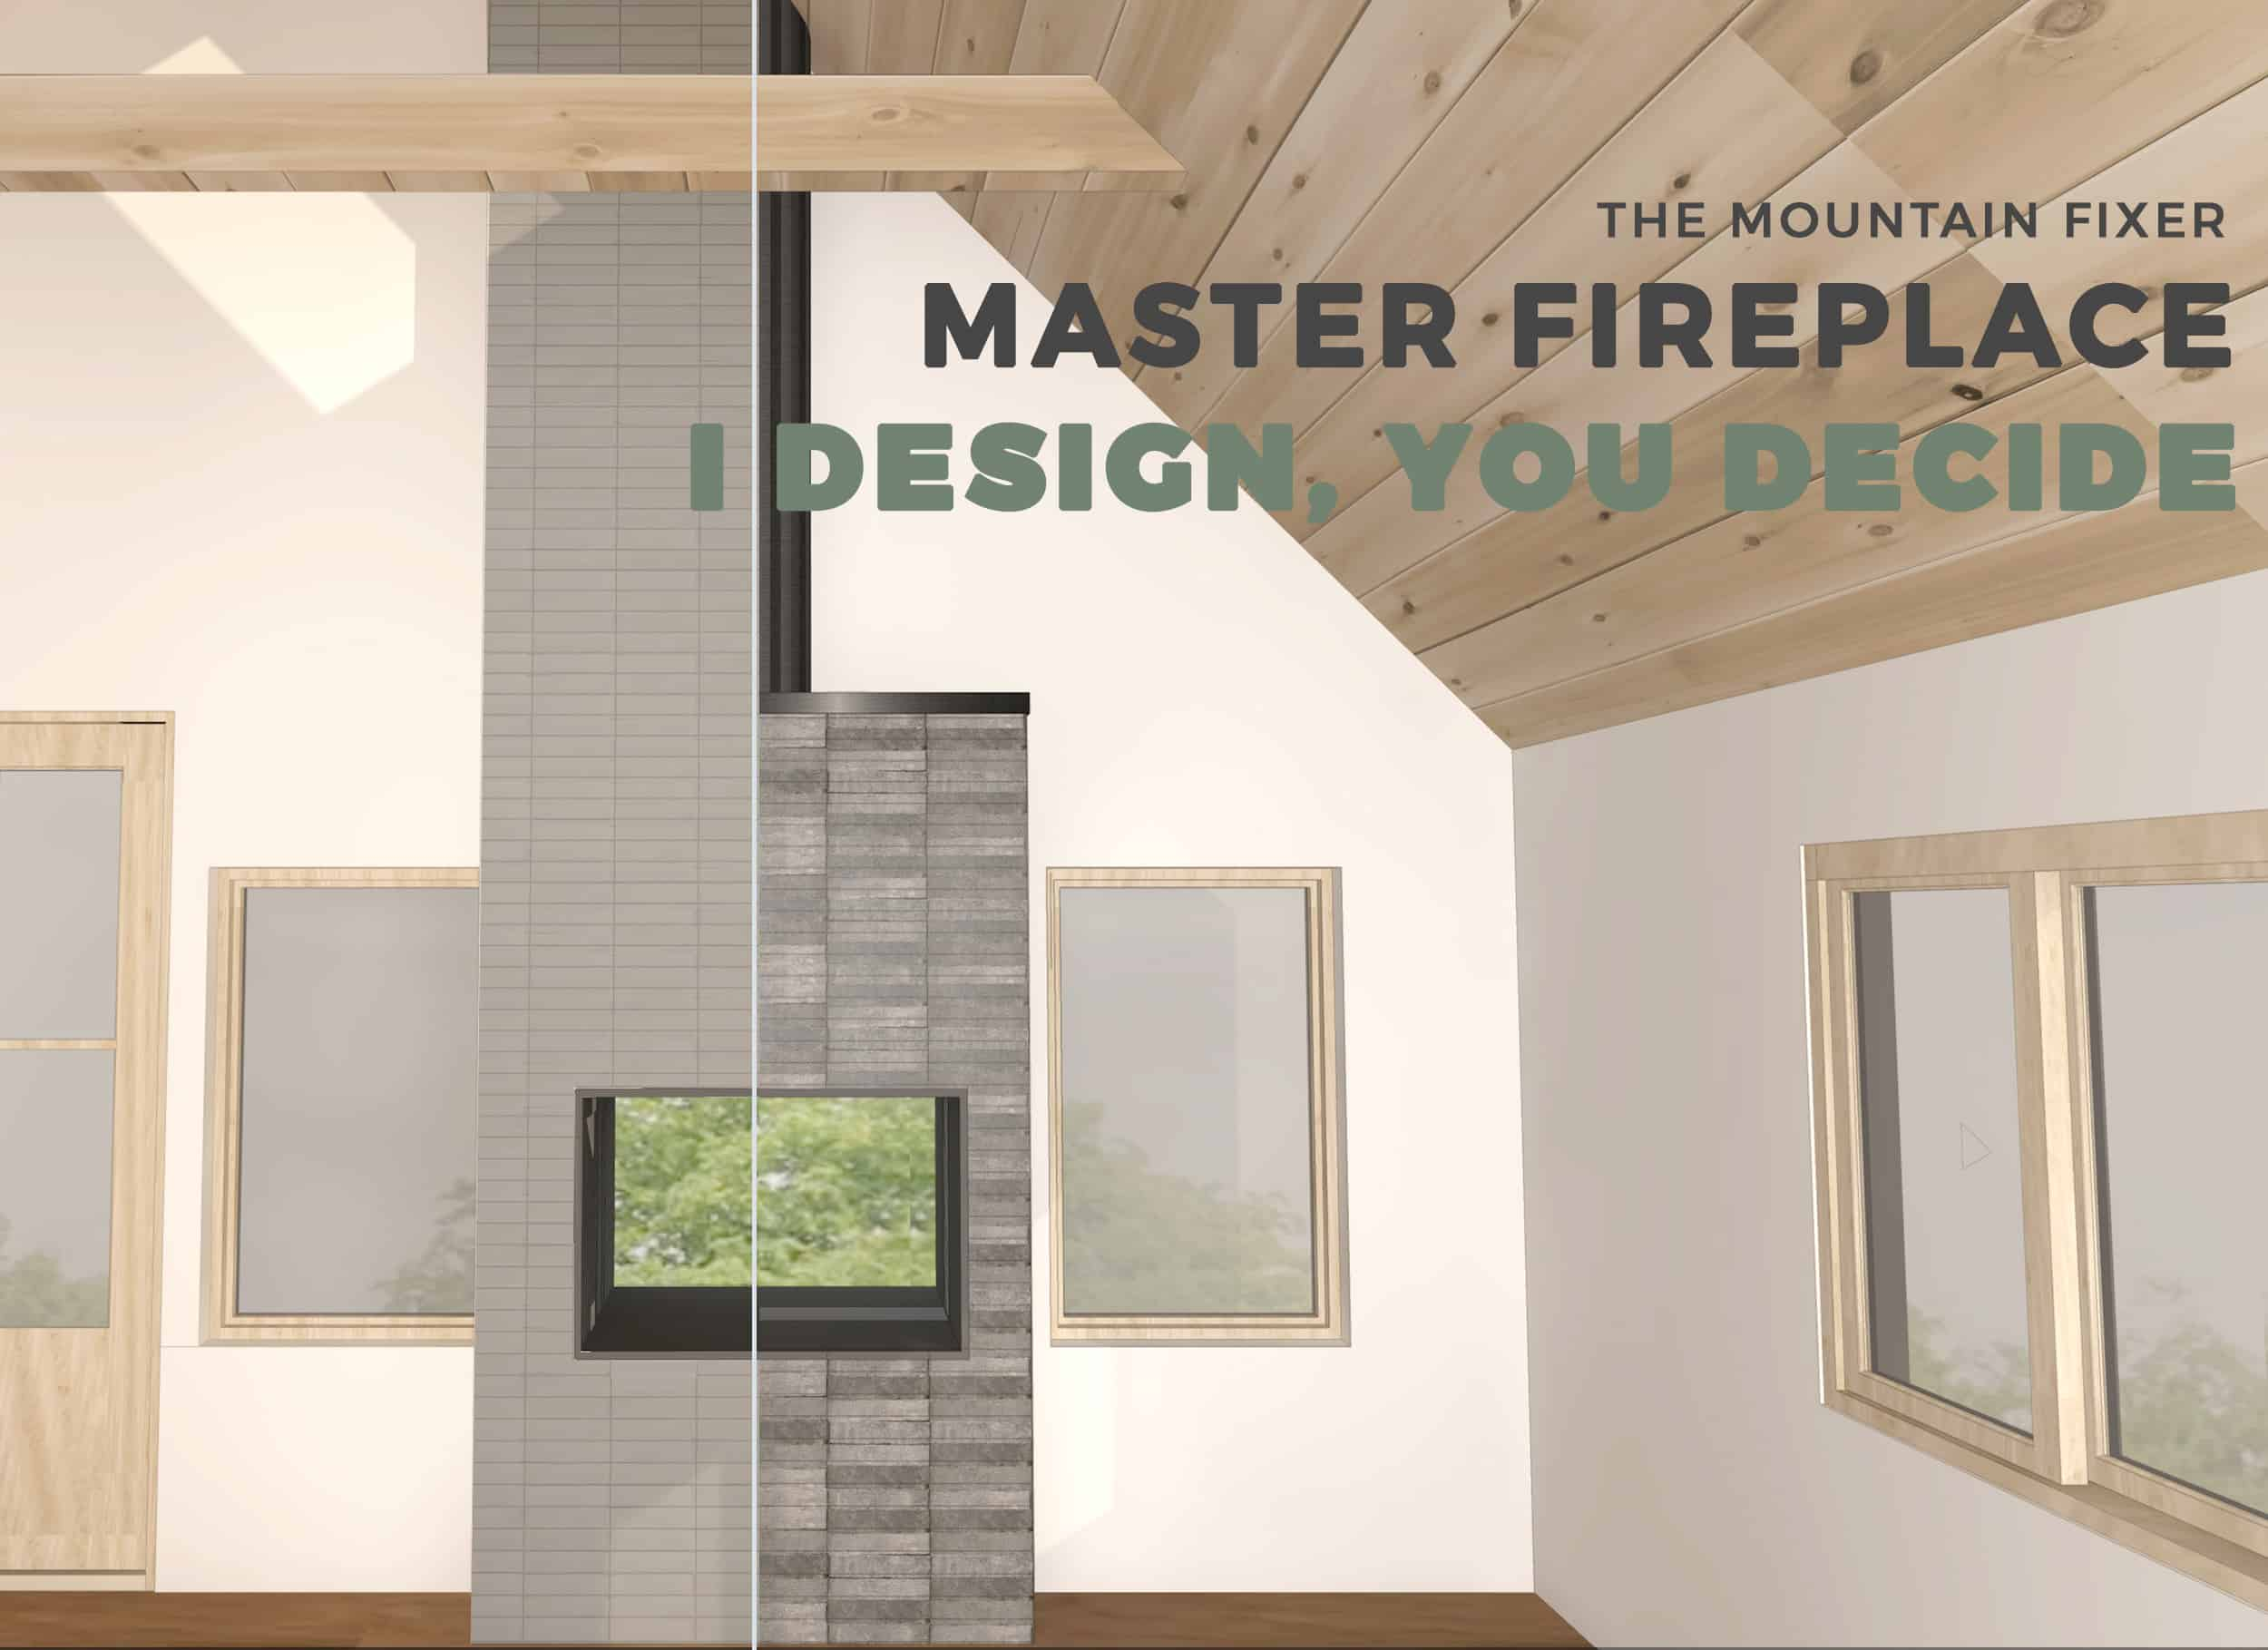 Emilyhendersondesign Mountain Fixer Master Fireplace I Design You Decide Opener 1